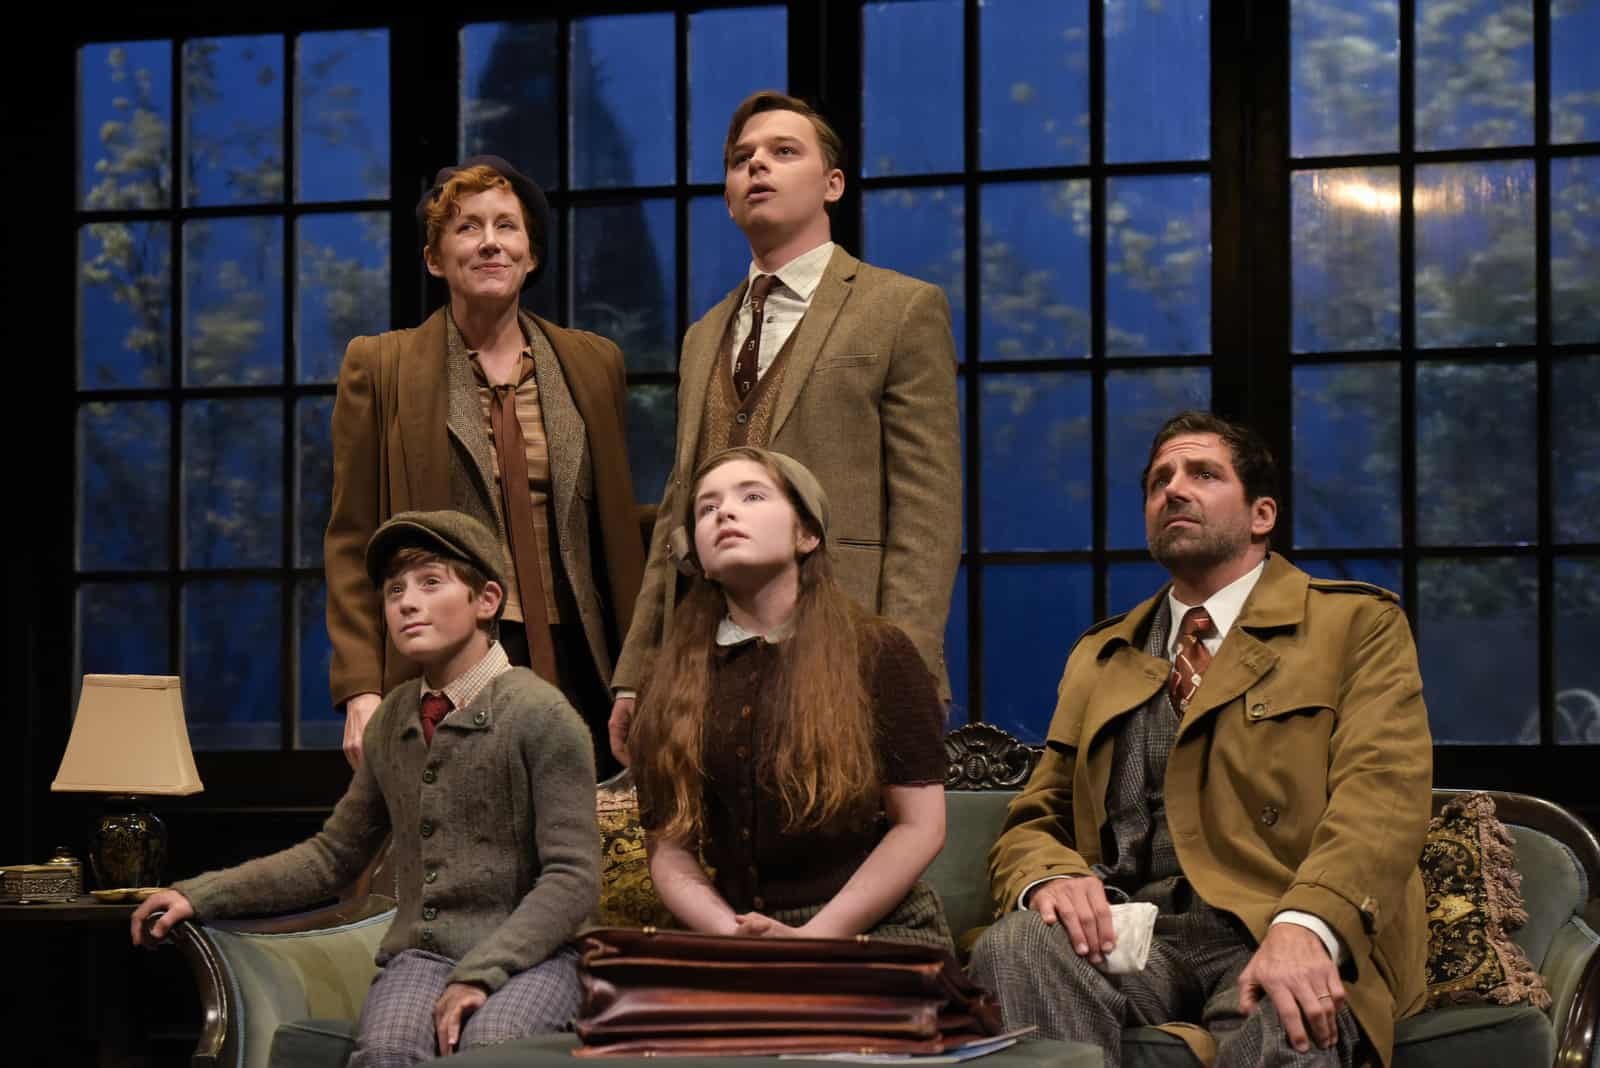 Watch on the Rhine - Berkeley Repertory Theatre - Review